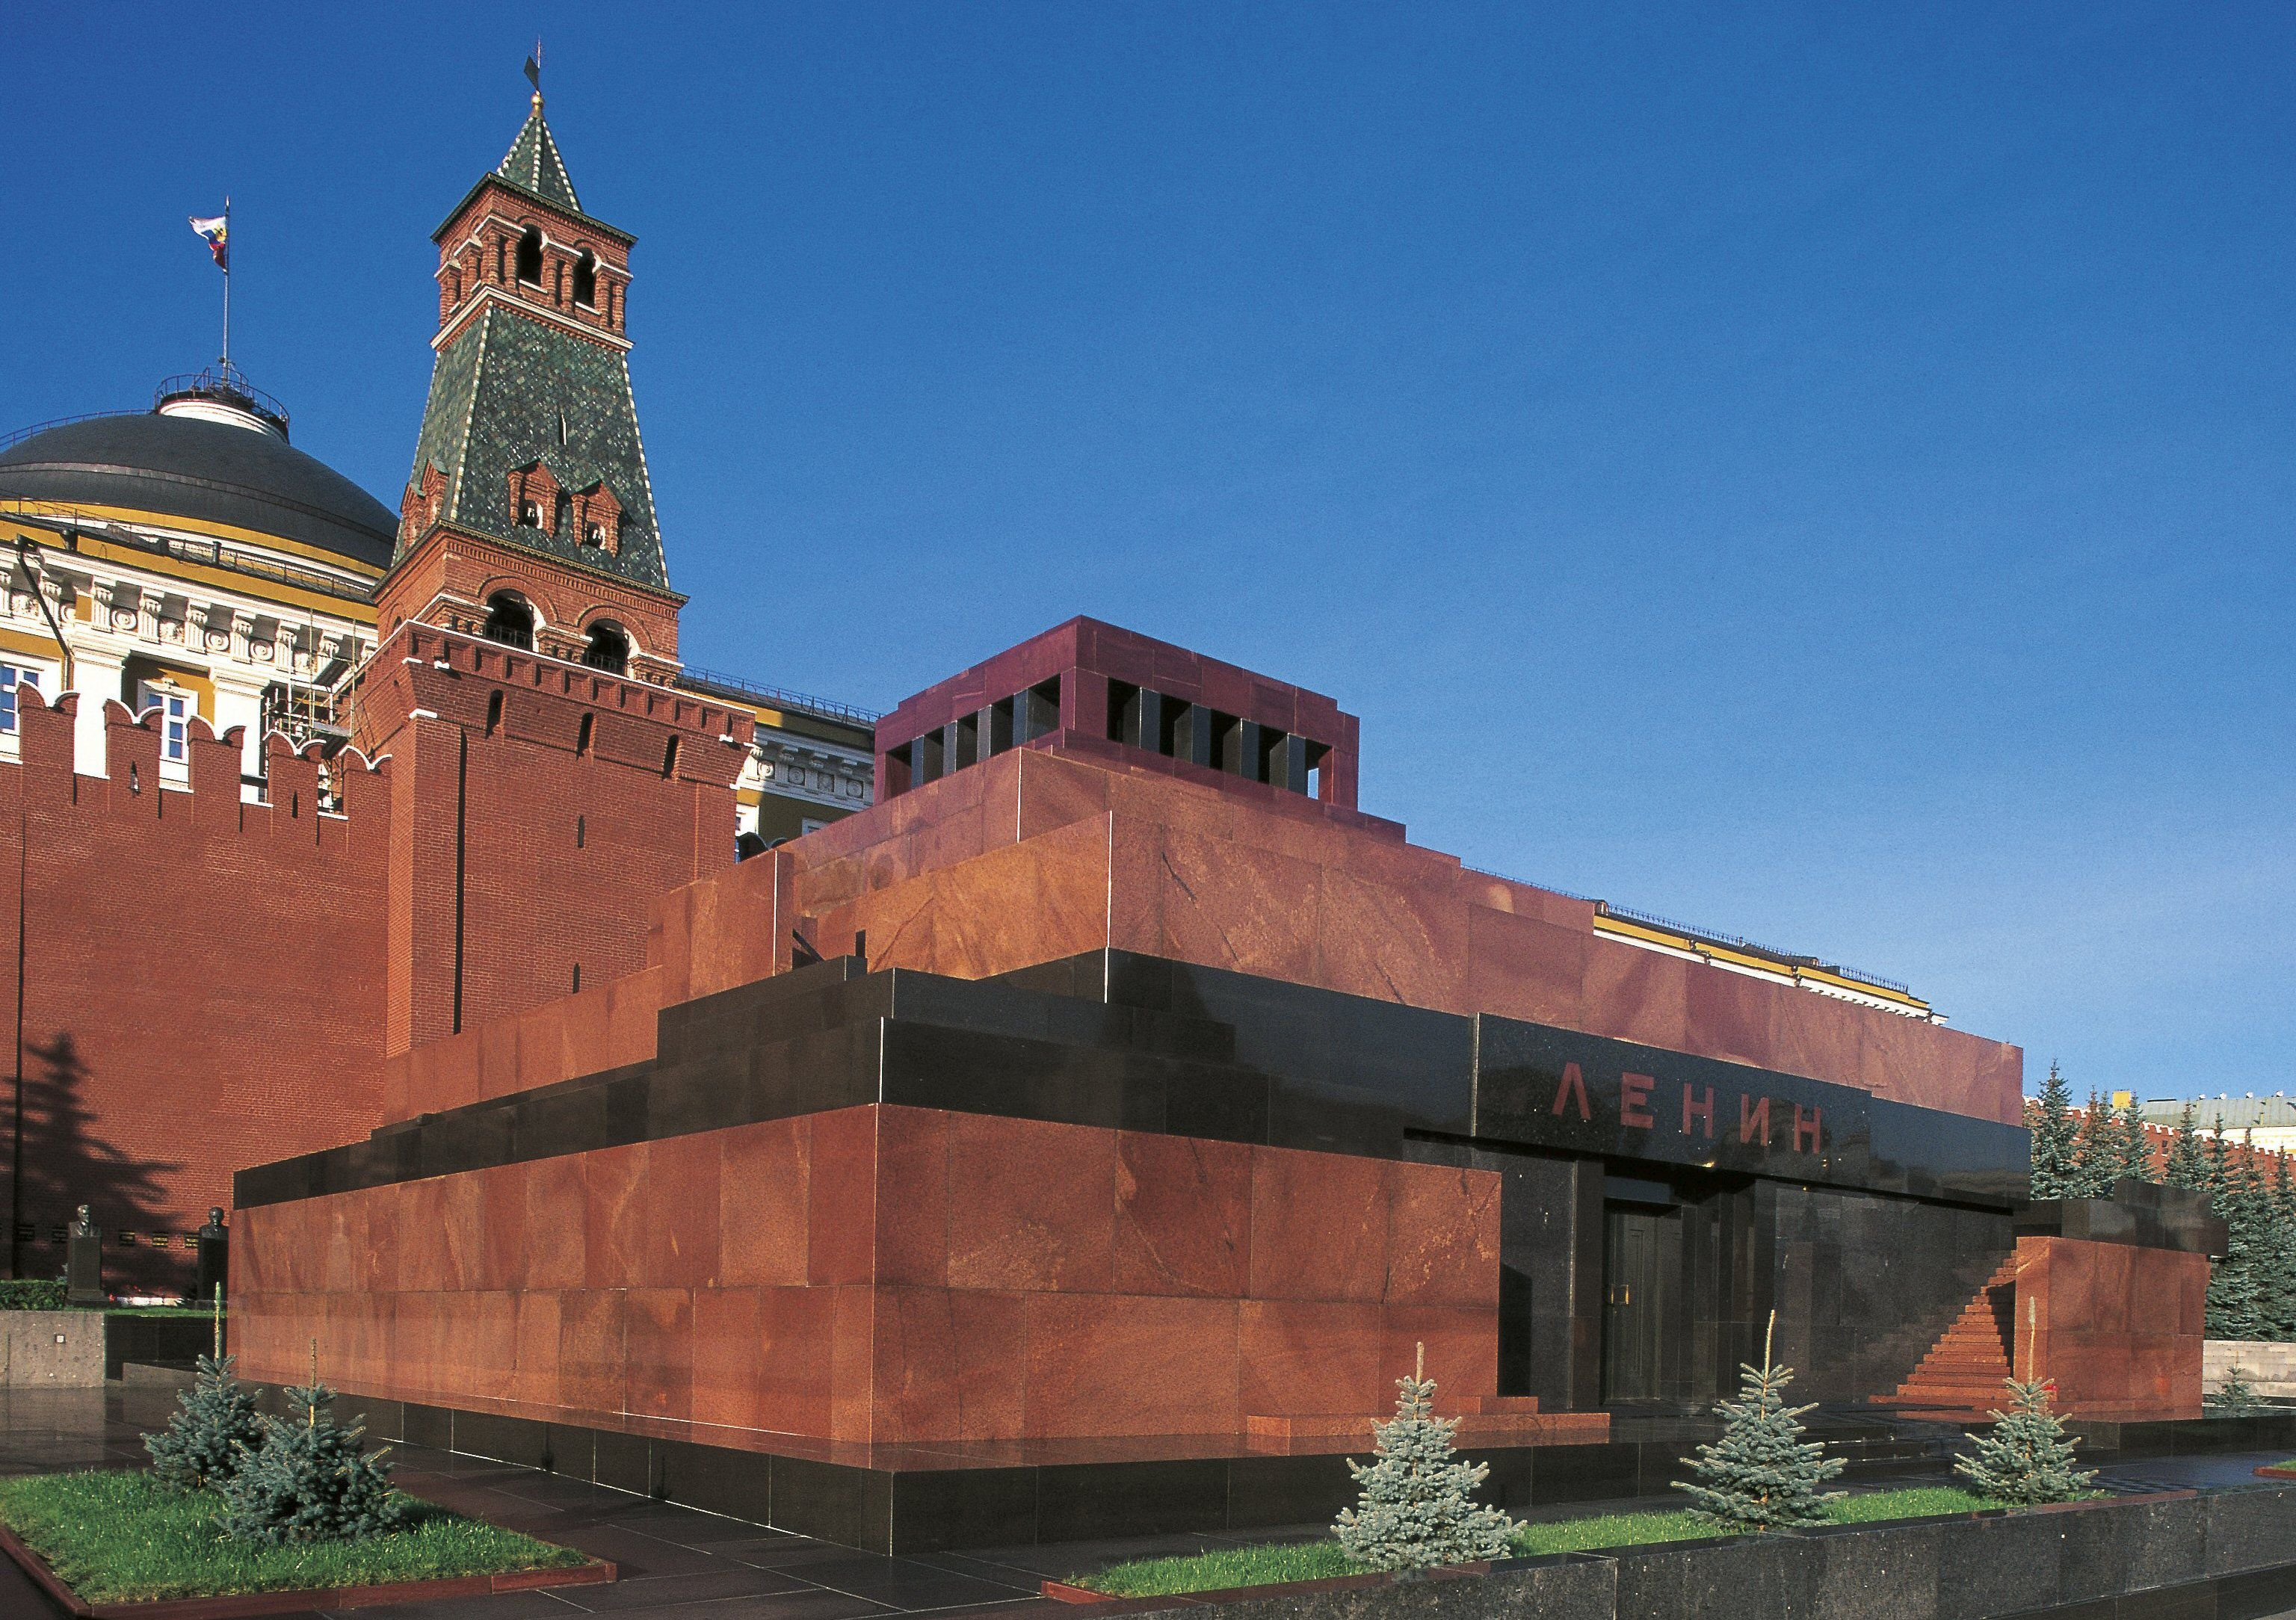 red stone fortress-like structure integrated into a red wall surrounding a towered Kremlin